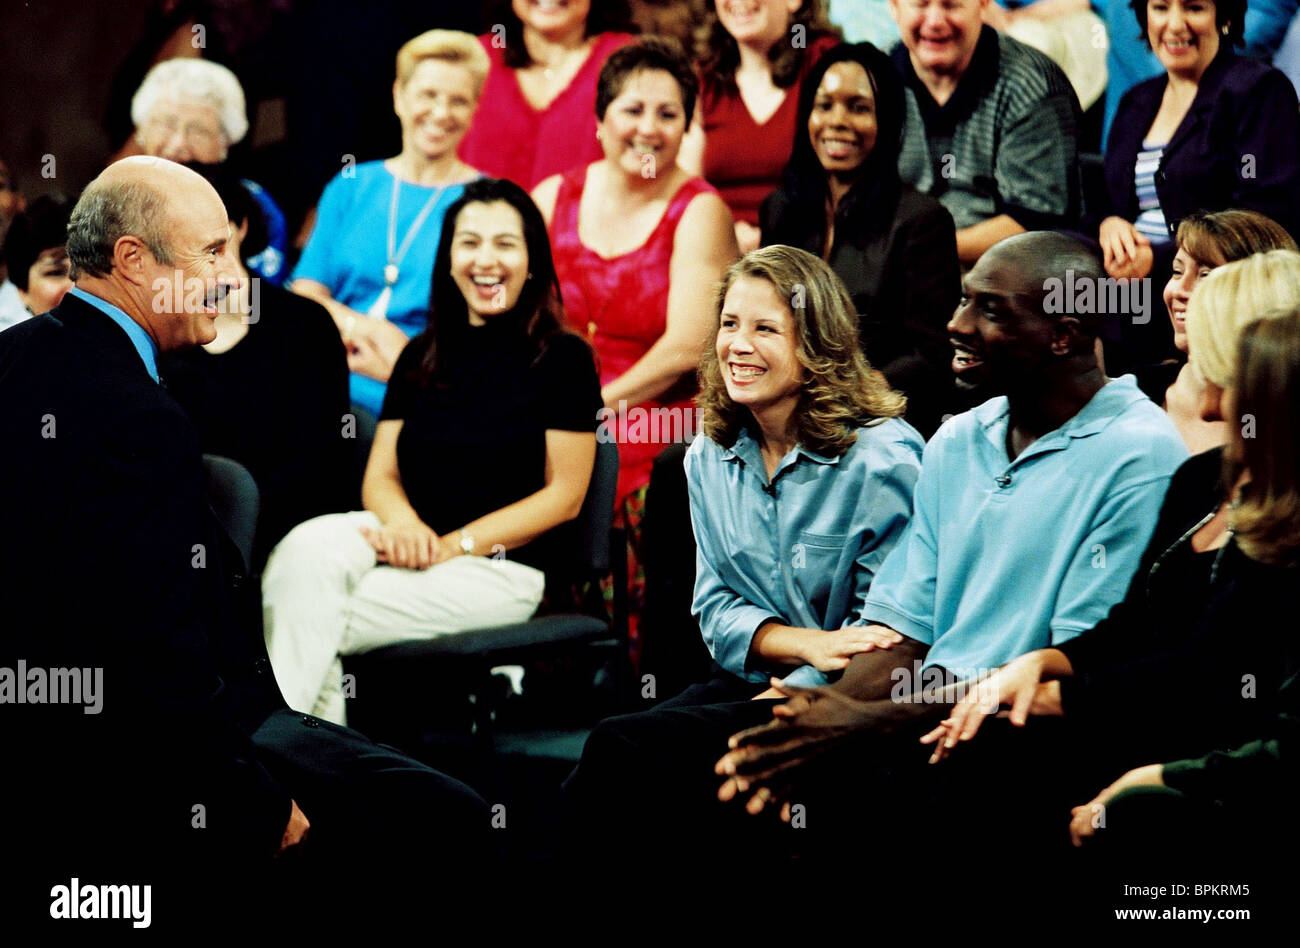 PHIL MCGRAW & AUDIENCE DR. PHIL (2003) - Stock Image